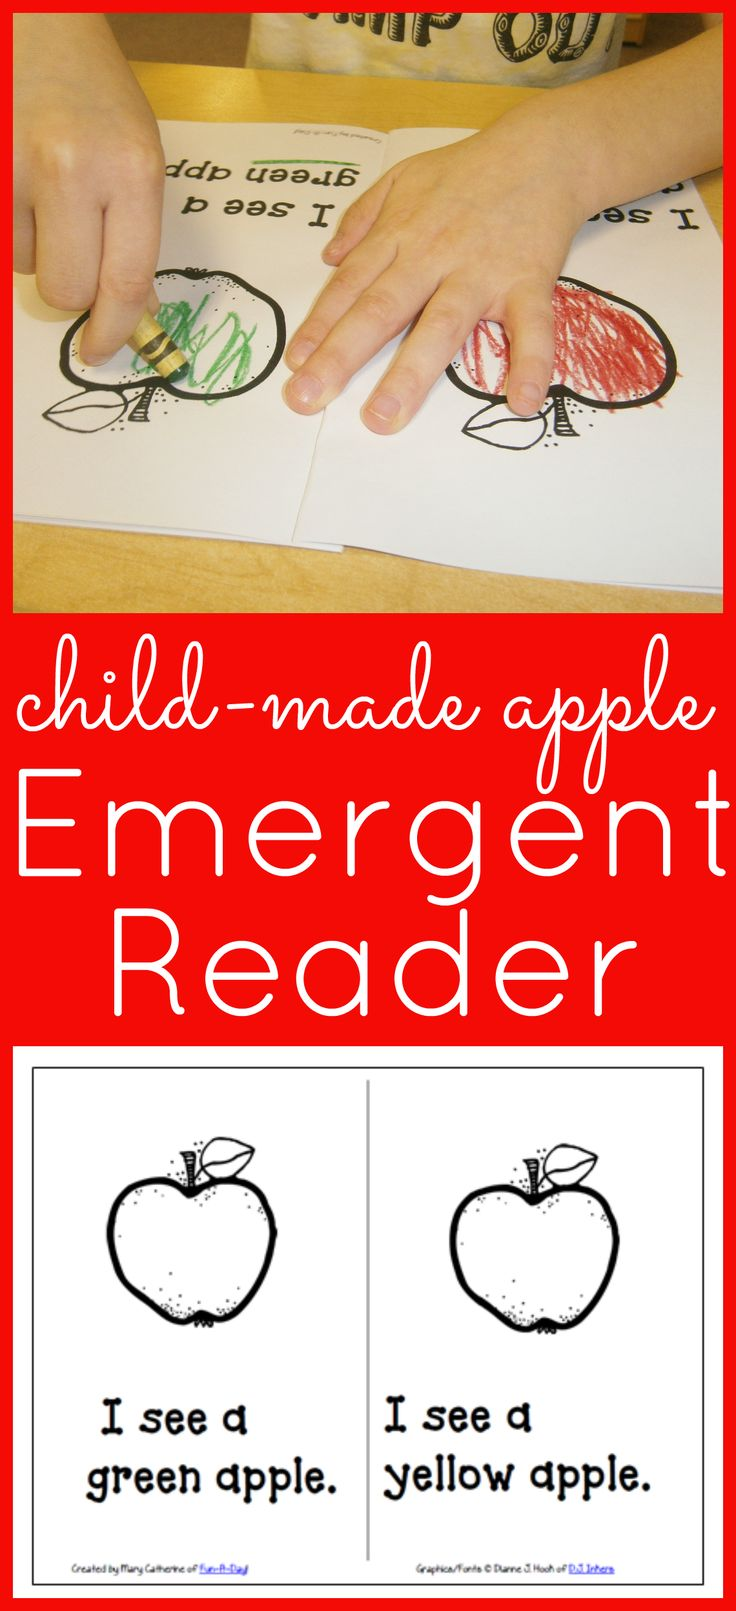 Apple Emergent Reader for Preschoolers from www.fun-a-day.com -- A simple book about apple colors. It has repetitive text and pictures the children color along the way. Includes a link to a free printable.